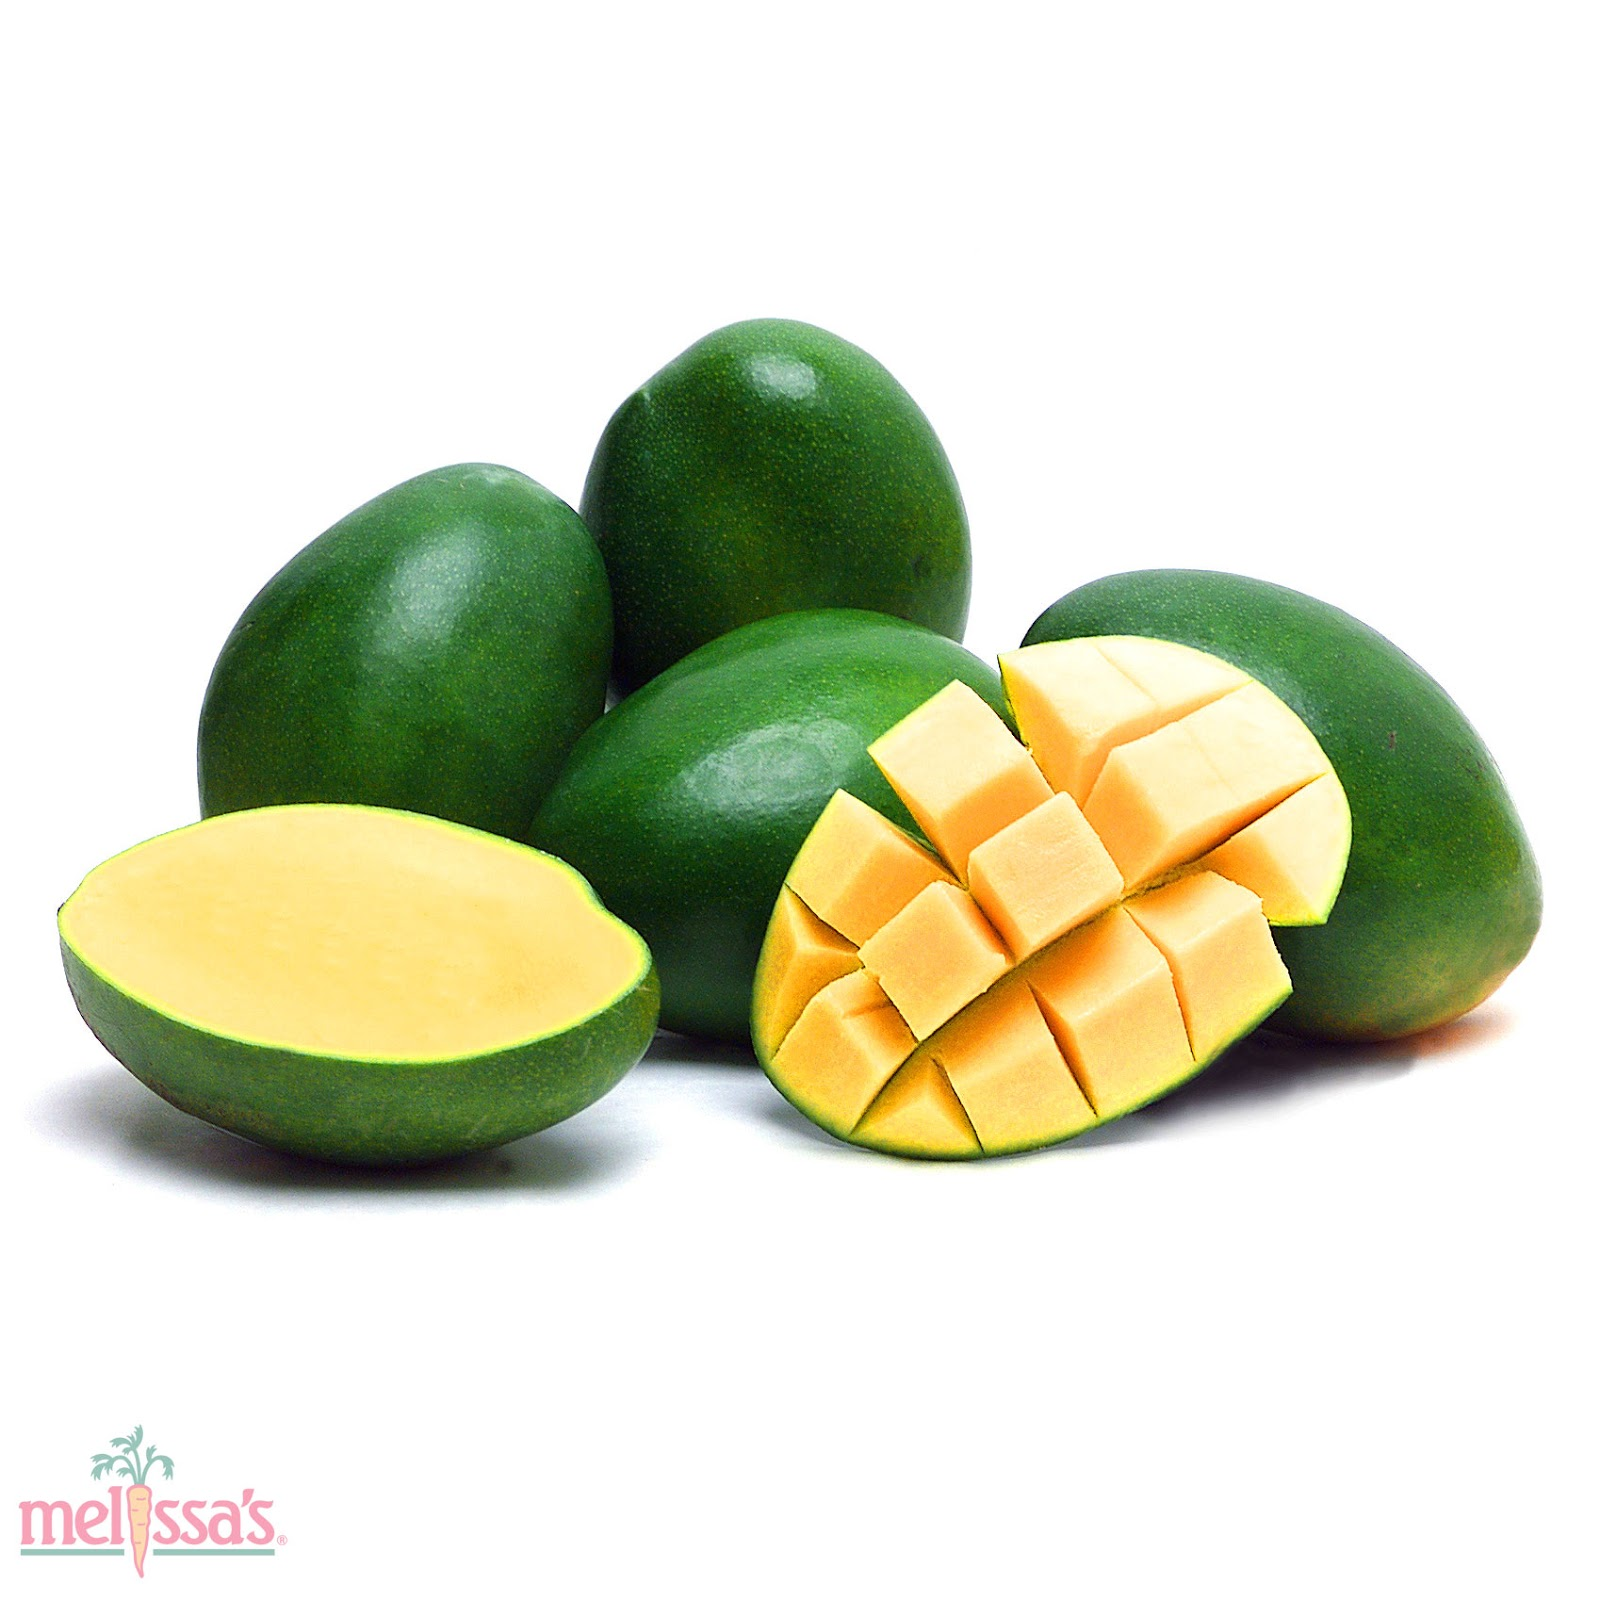 Know your mango how to cut eat and ripen melissas produce blog keitt mango ccuart Gallery